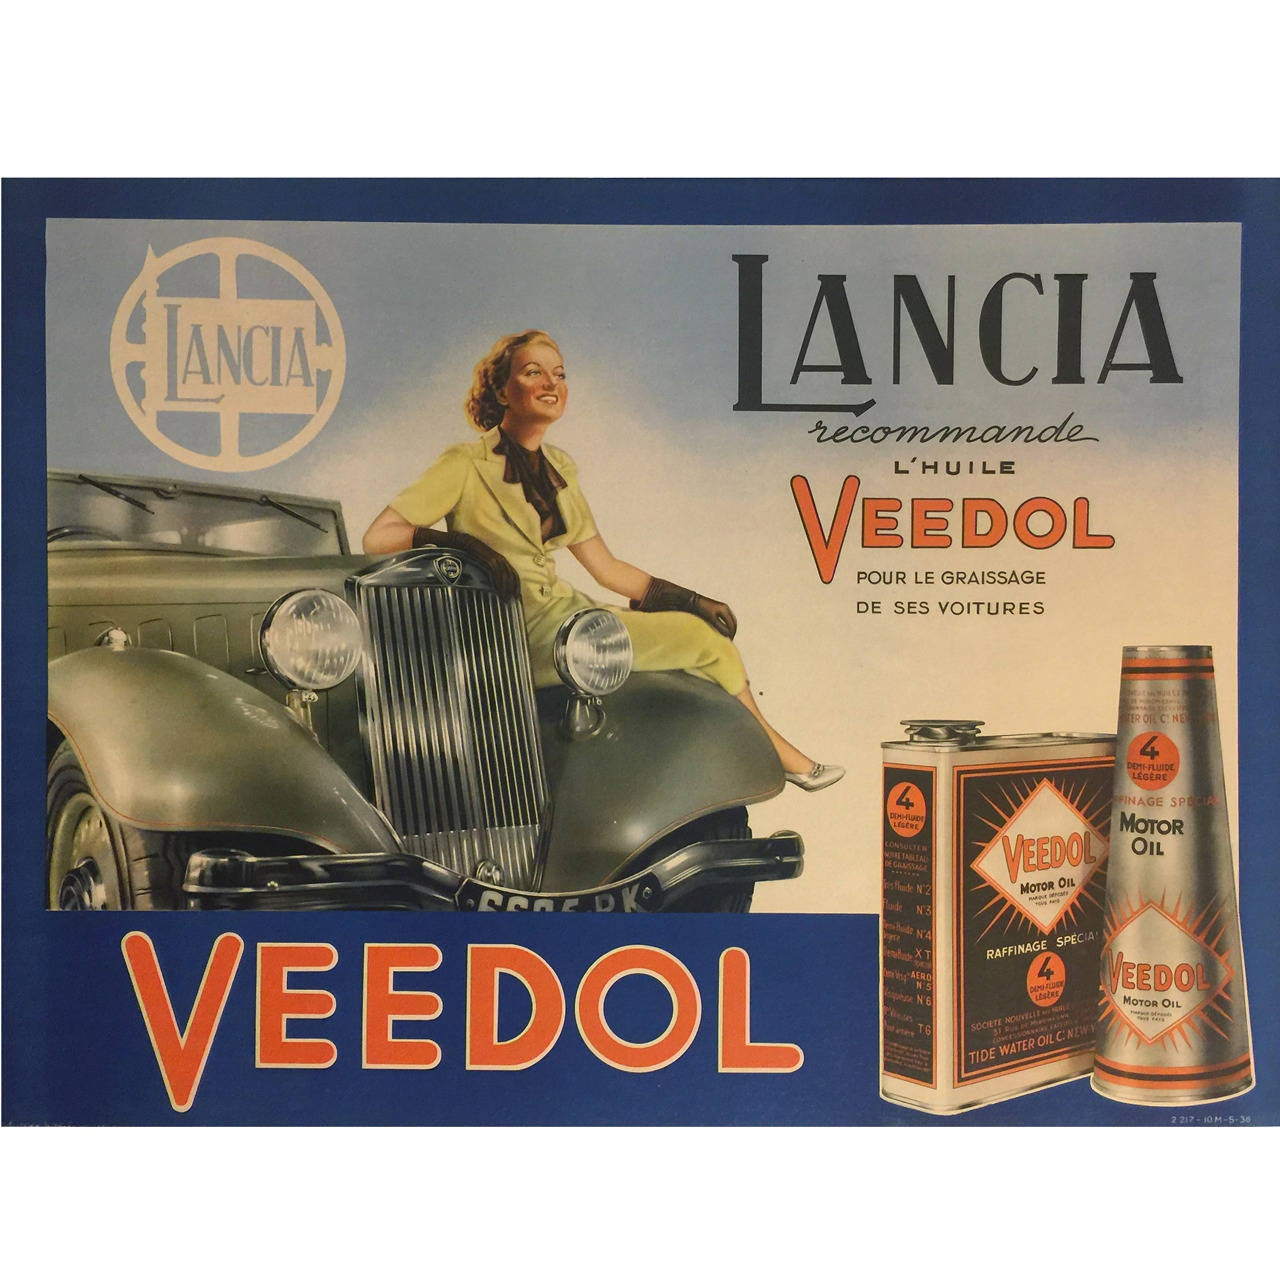 French Art Deco Period Advertising Poster for Veedol Motor Oil, 1936